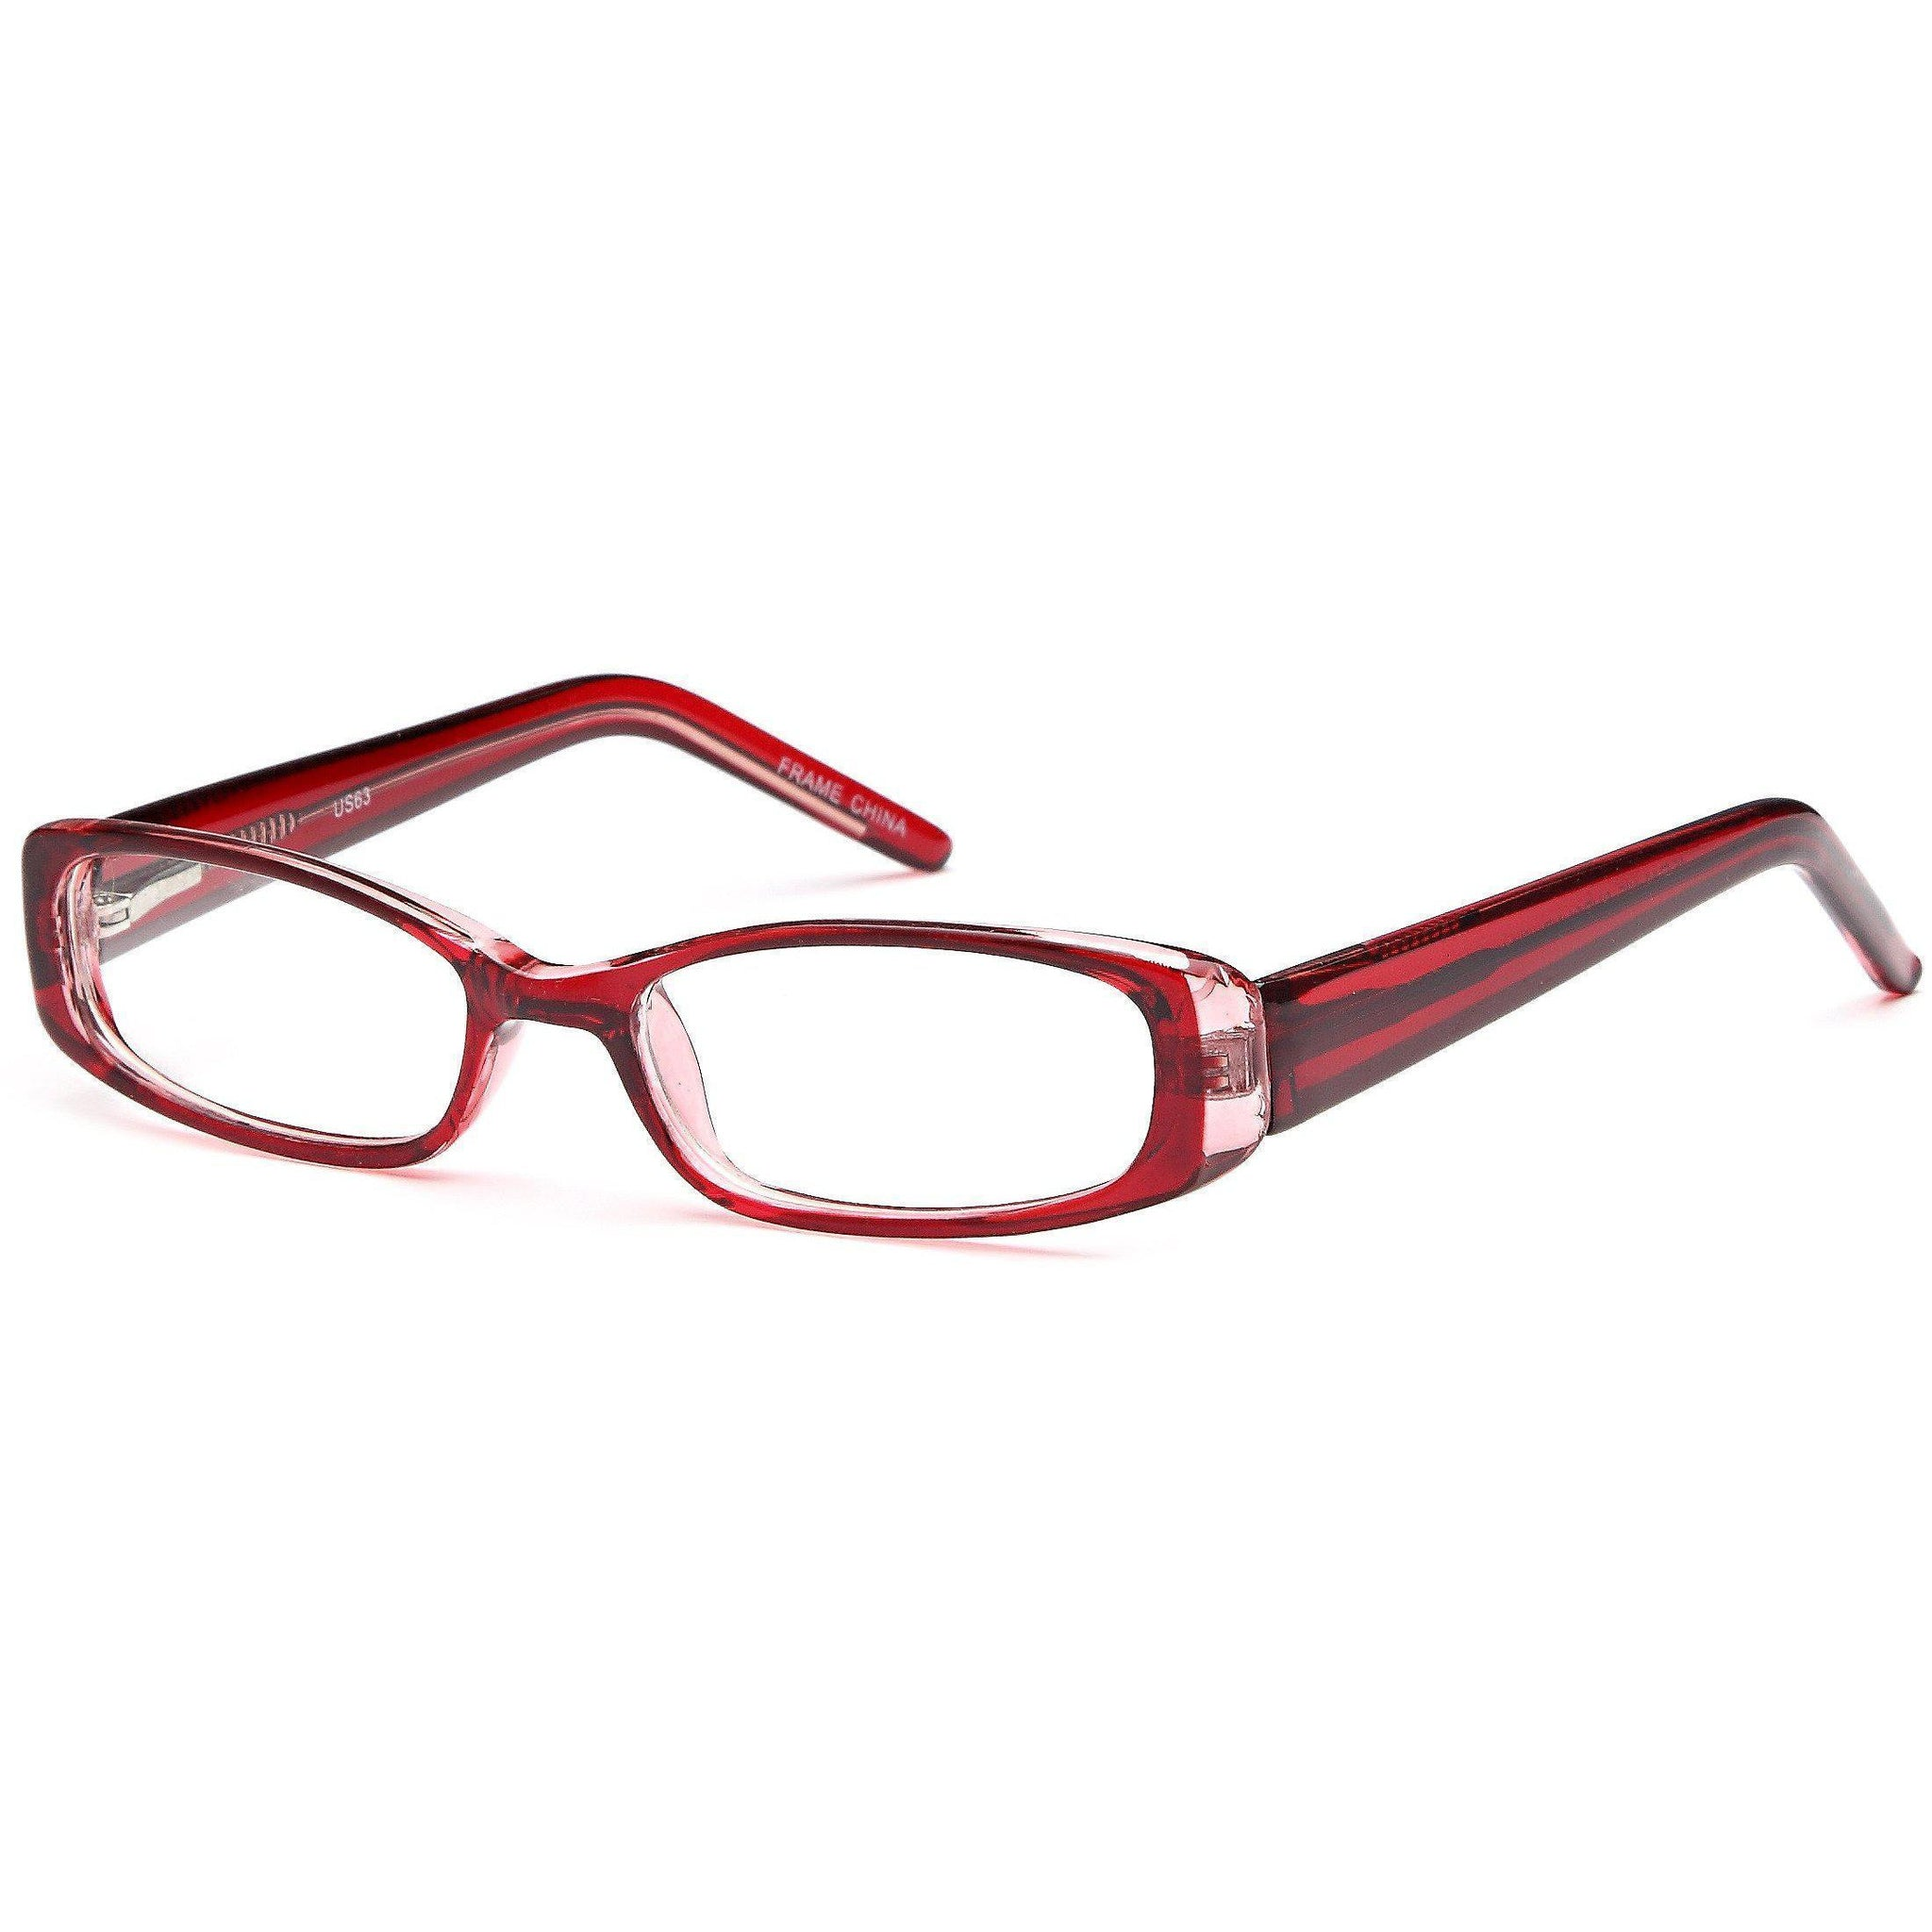 4U Prescription Glasses US 63 Optical Eyeglasses Frame - timetoshade